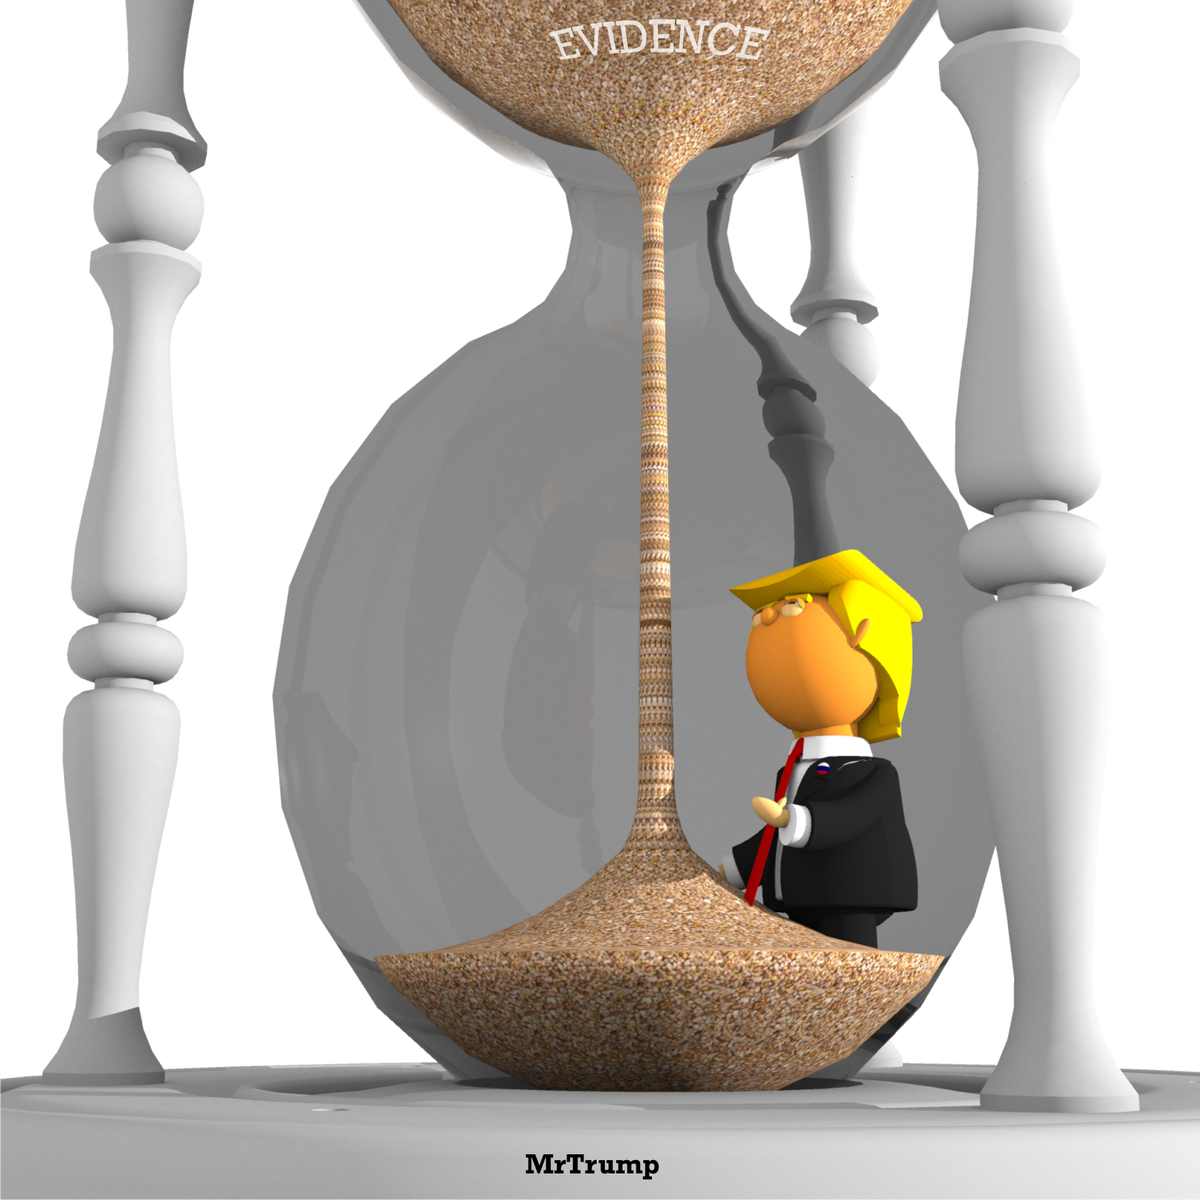 Time is running out ...  #MrTrump #Trump #Trumprussia